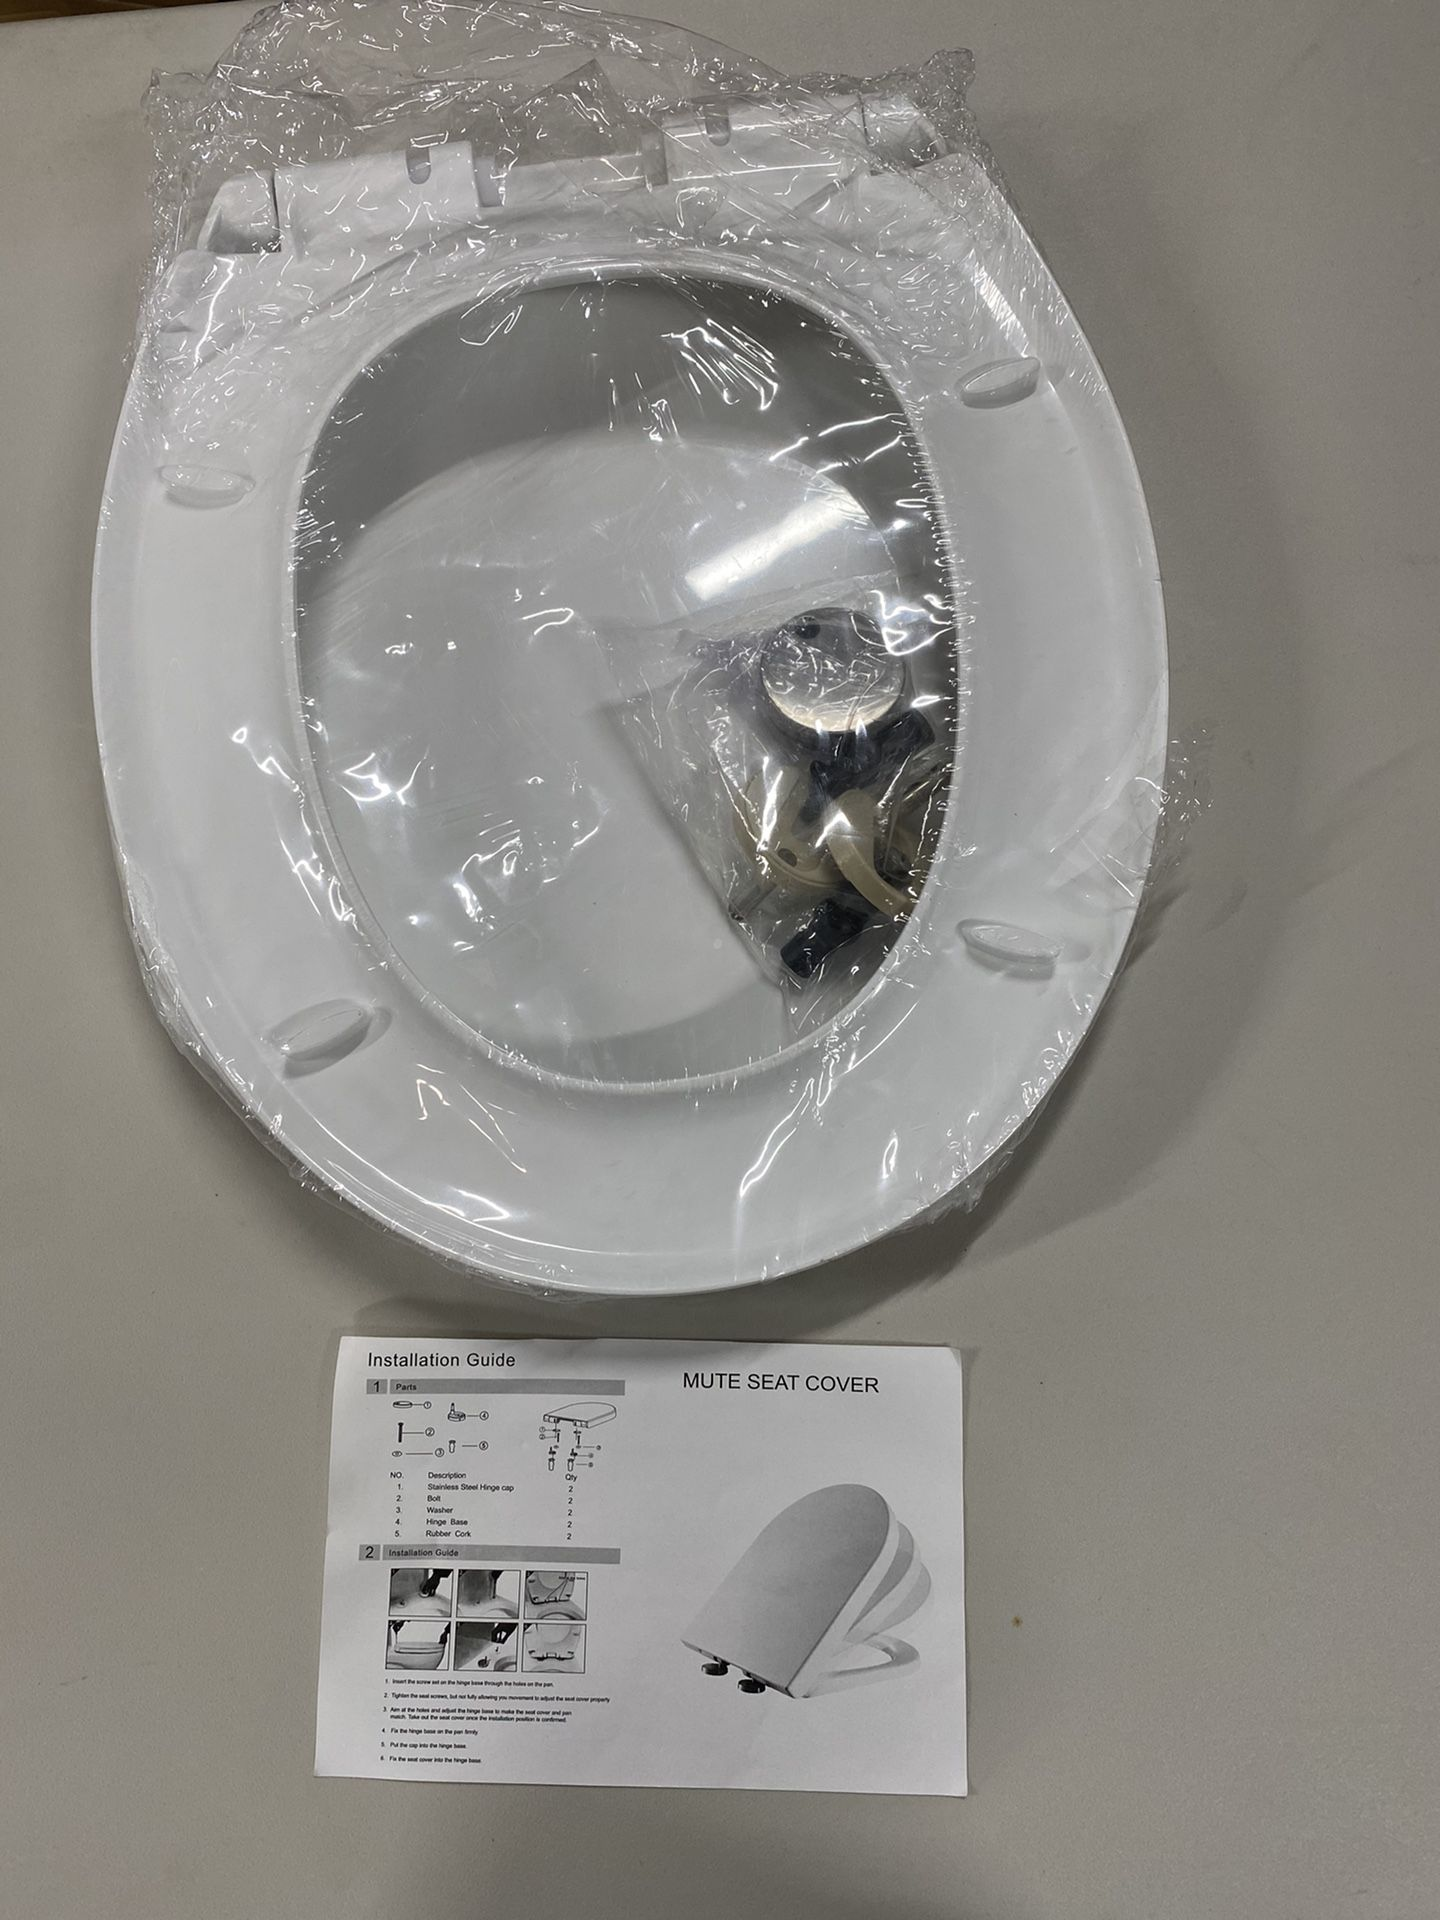 Coverst Thickening And Mute Toilet Cover Manufacturers Make Direct Selling Toilet Lid Thickening Mute Seat Cover Plate Slow Down And Quick Dismantling